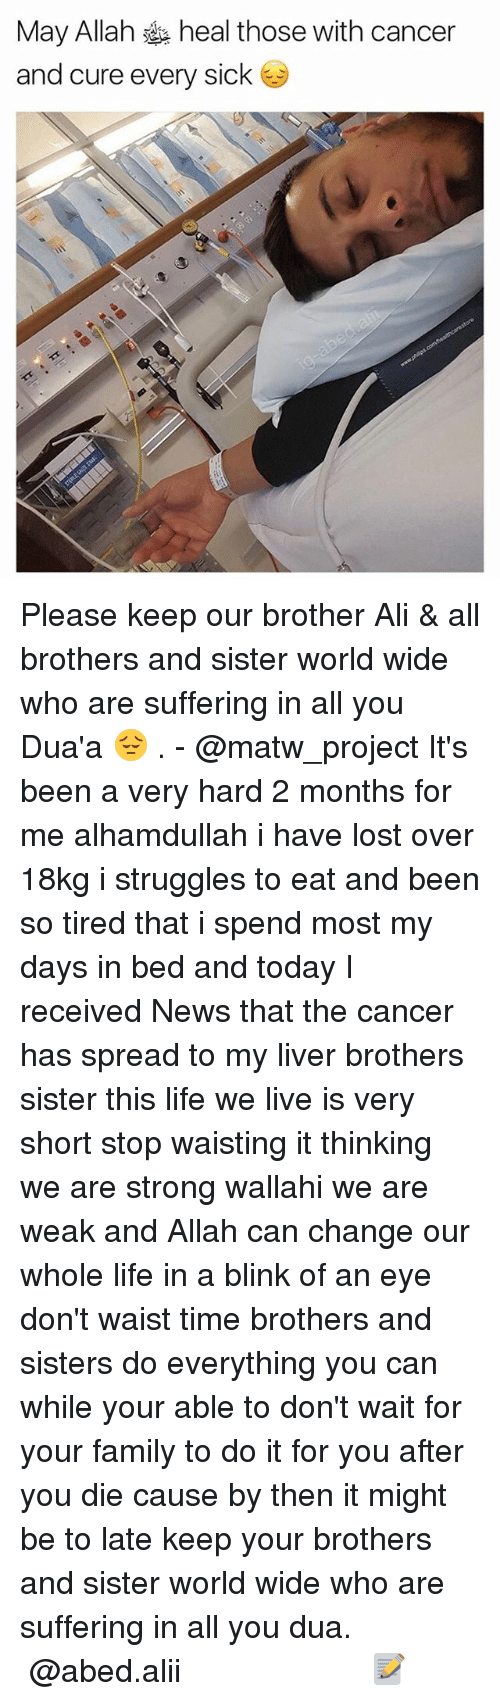 Spreaded: May Allah heal those with cancer  and cure every sick Please keep our brother Ali & all brothers and sister world wide who are suffering in all you Dua'a 😔 . - @matw_project It's been a very hard 2 months for me alhamdullah i have lost over 18kg i struggles to eat and been so tired that i spend most my days in bed and today I received News that the cancer has spread to my liver brothers sister this life we live is very short stop waisting it thinking we are strong wallahi we are weak and Allah can change our whole life in a blink of an eye don't waist time brothers and sisters do everything you can while your able to don't wait for your family to do it for you after you die cause by then it might be to late keep your brothers and sister world wide who are suffering in all you dua. ▃▃▃▃▃▃▃▃▃▃▃▃▃▃▃▃▃▃▃▃ @abed.alii 📝